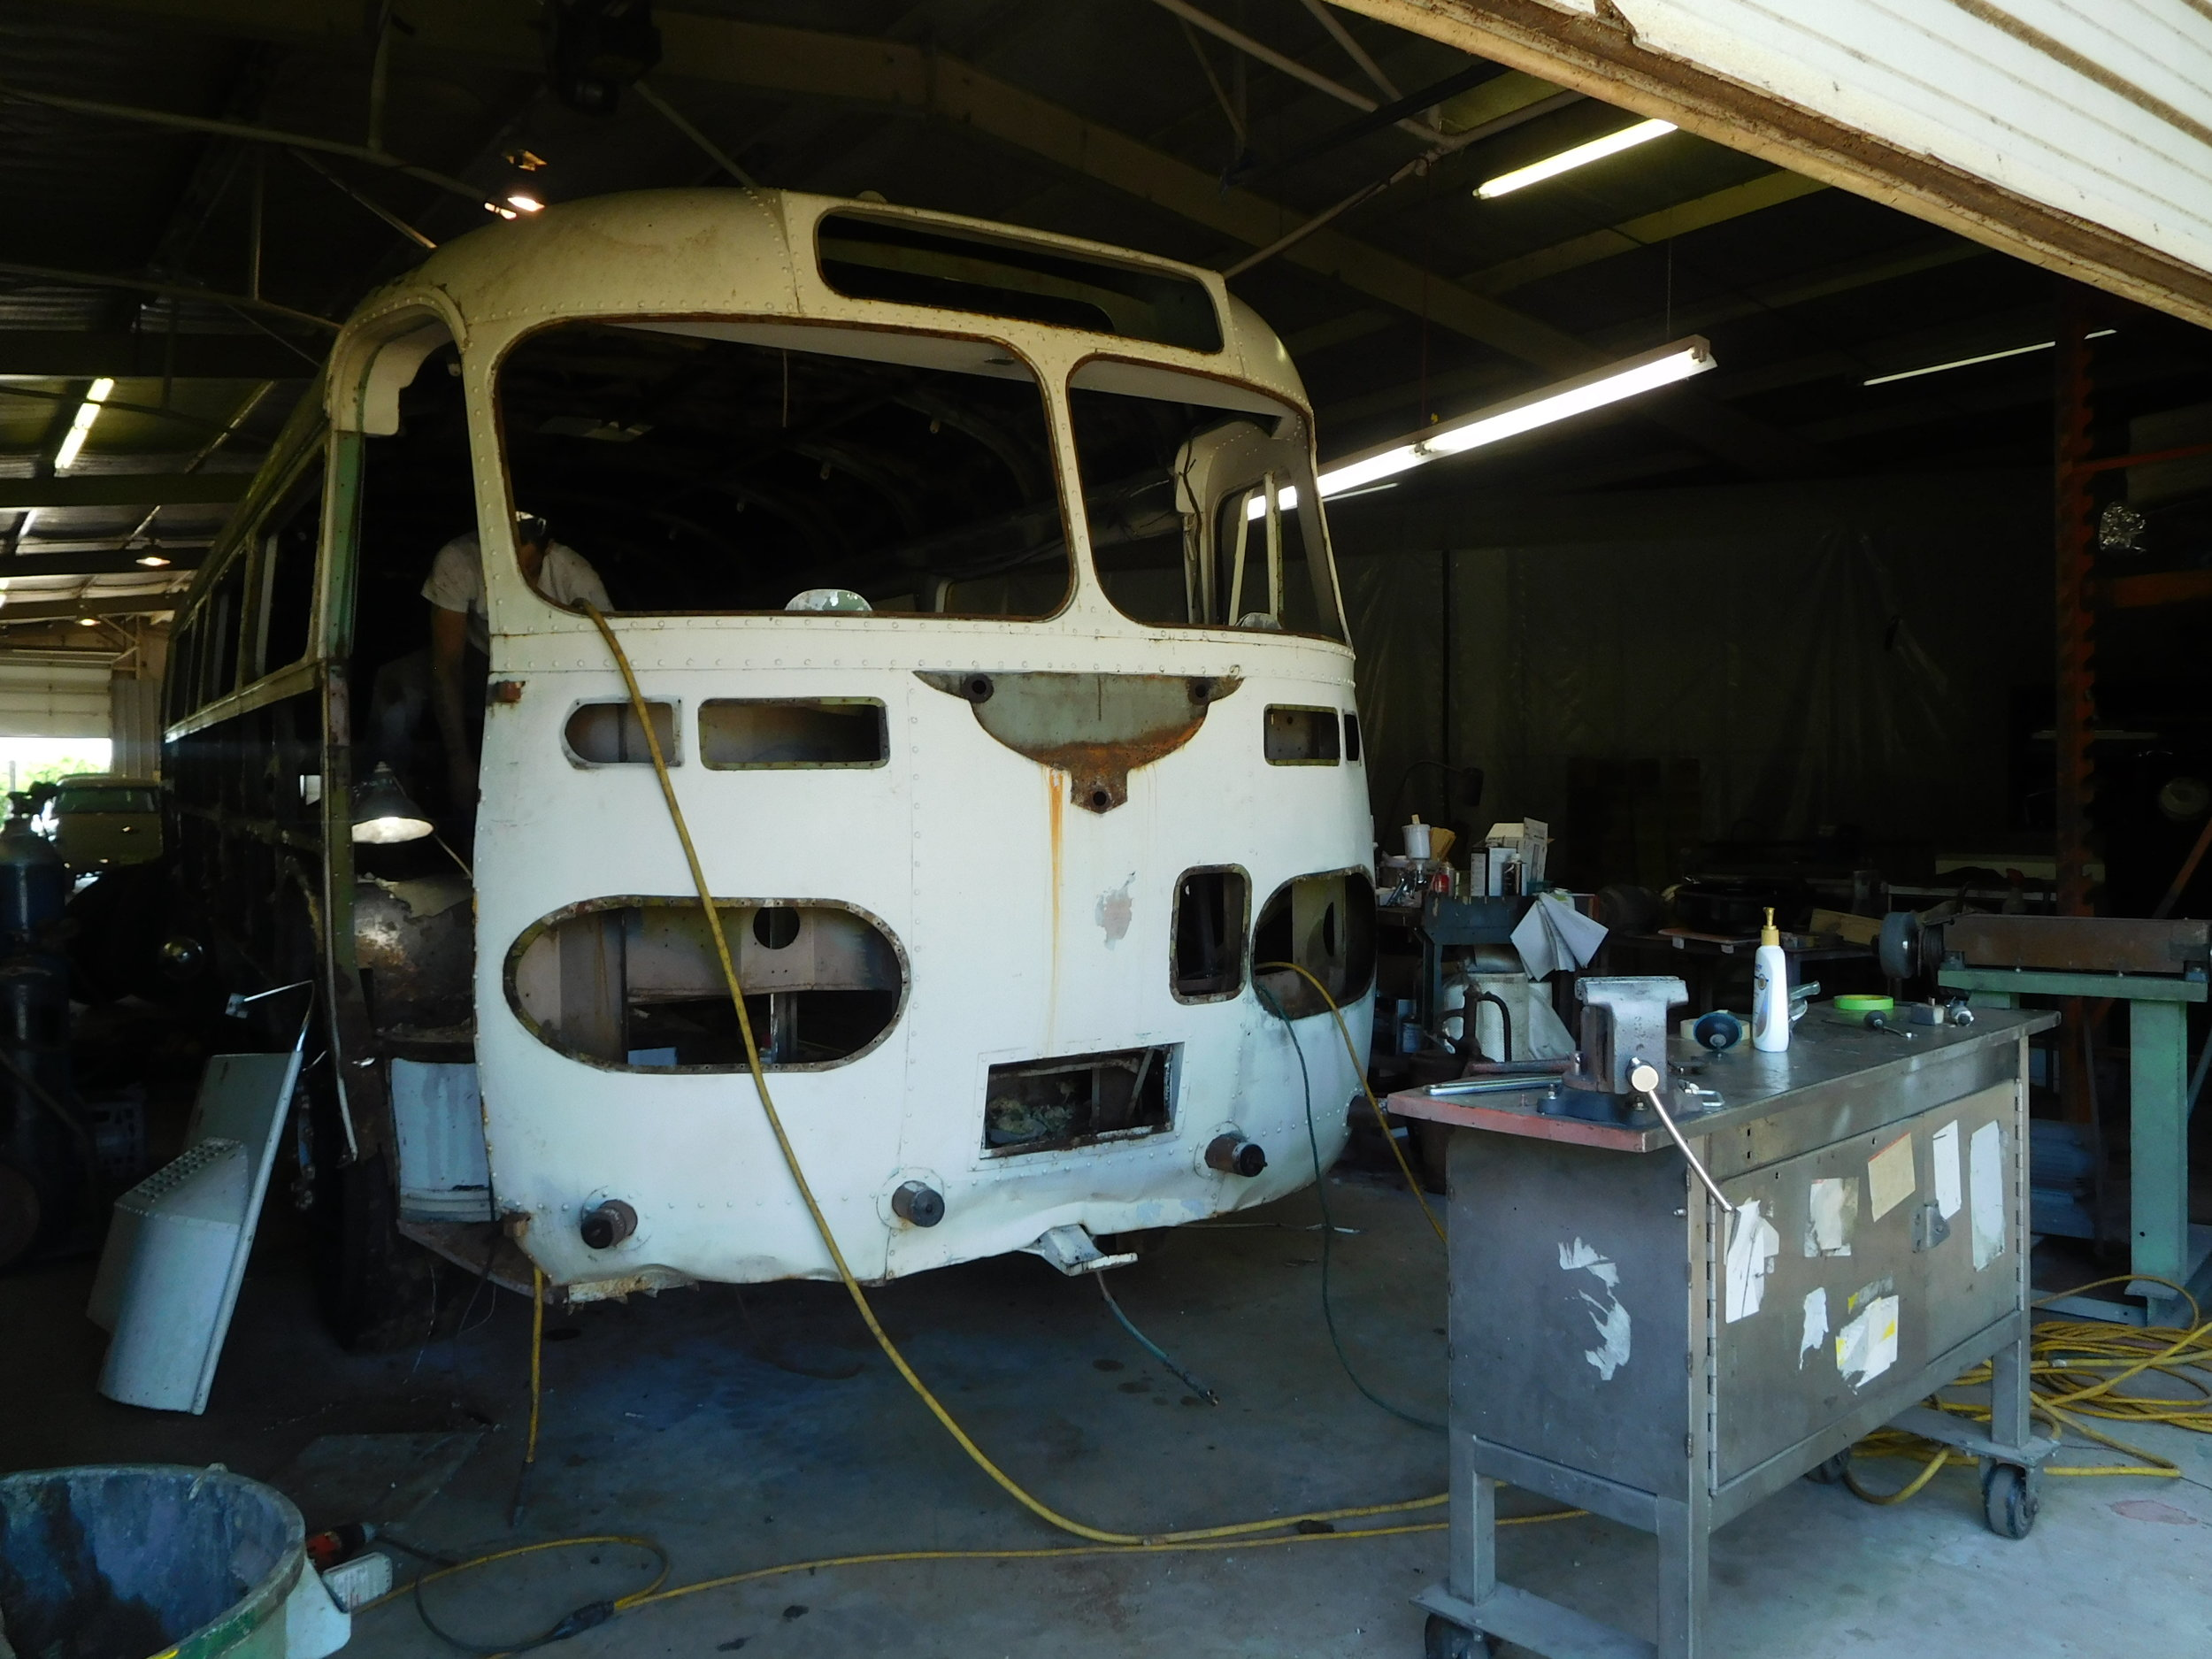 Windshields, lights, bumpers, wiper motors, wiring, and plumbing removed